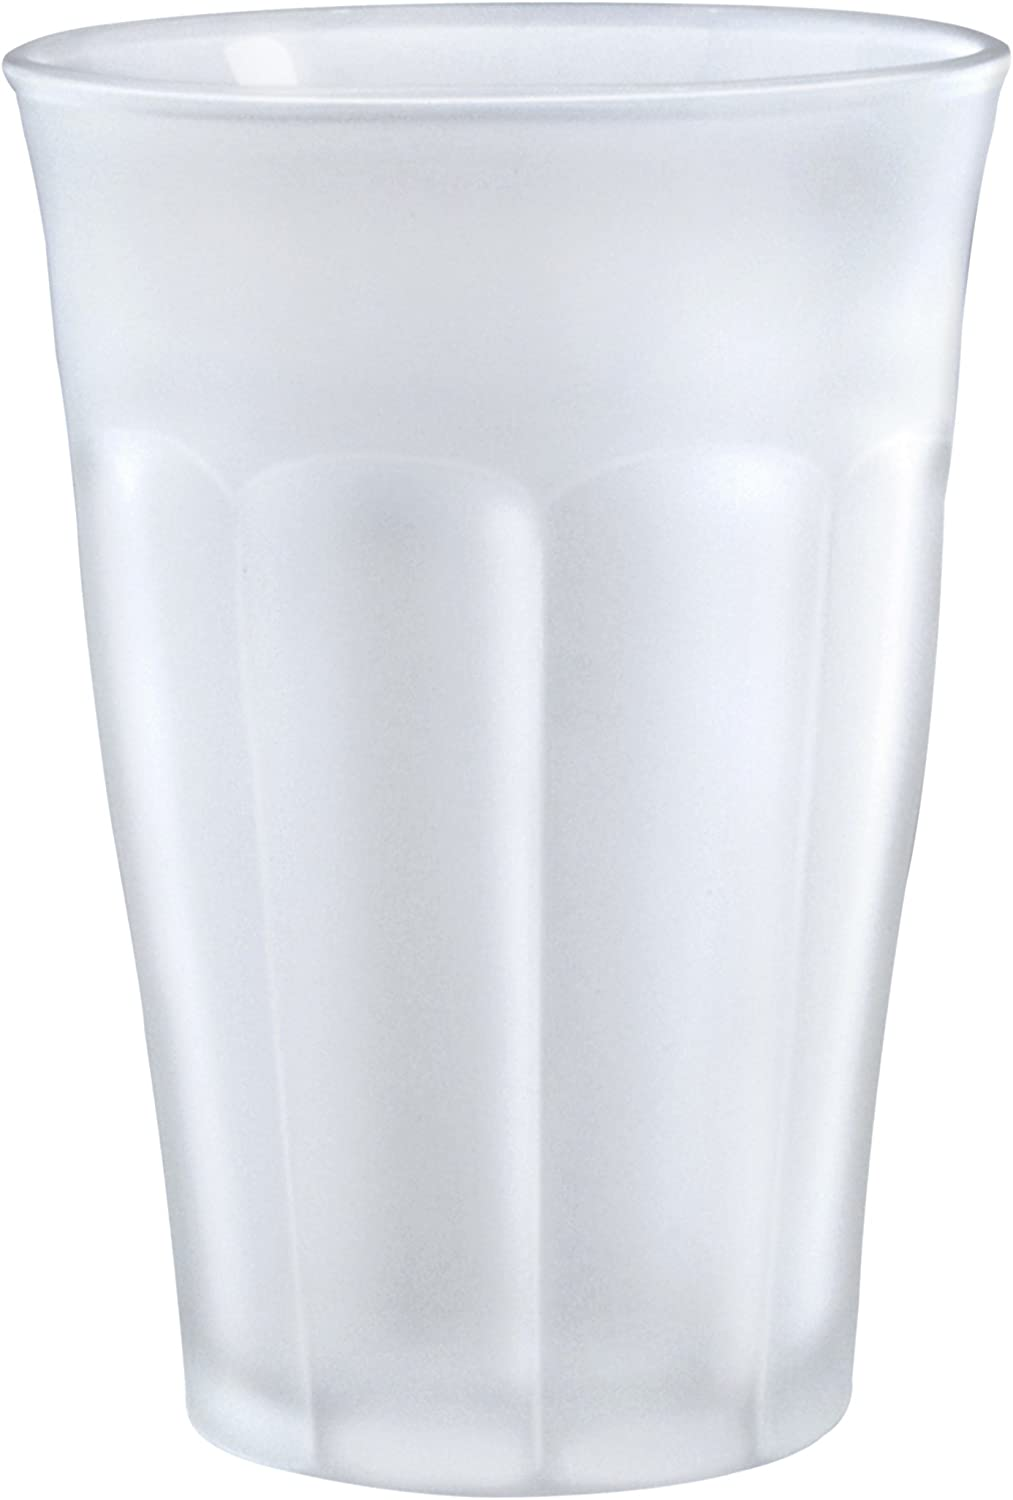 Duralex 1029SR06 6 Picardie Frosted Glass Tumbler, 12.625 oz,